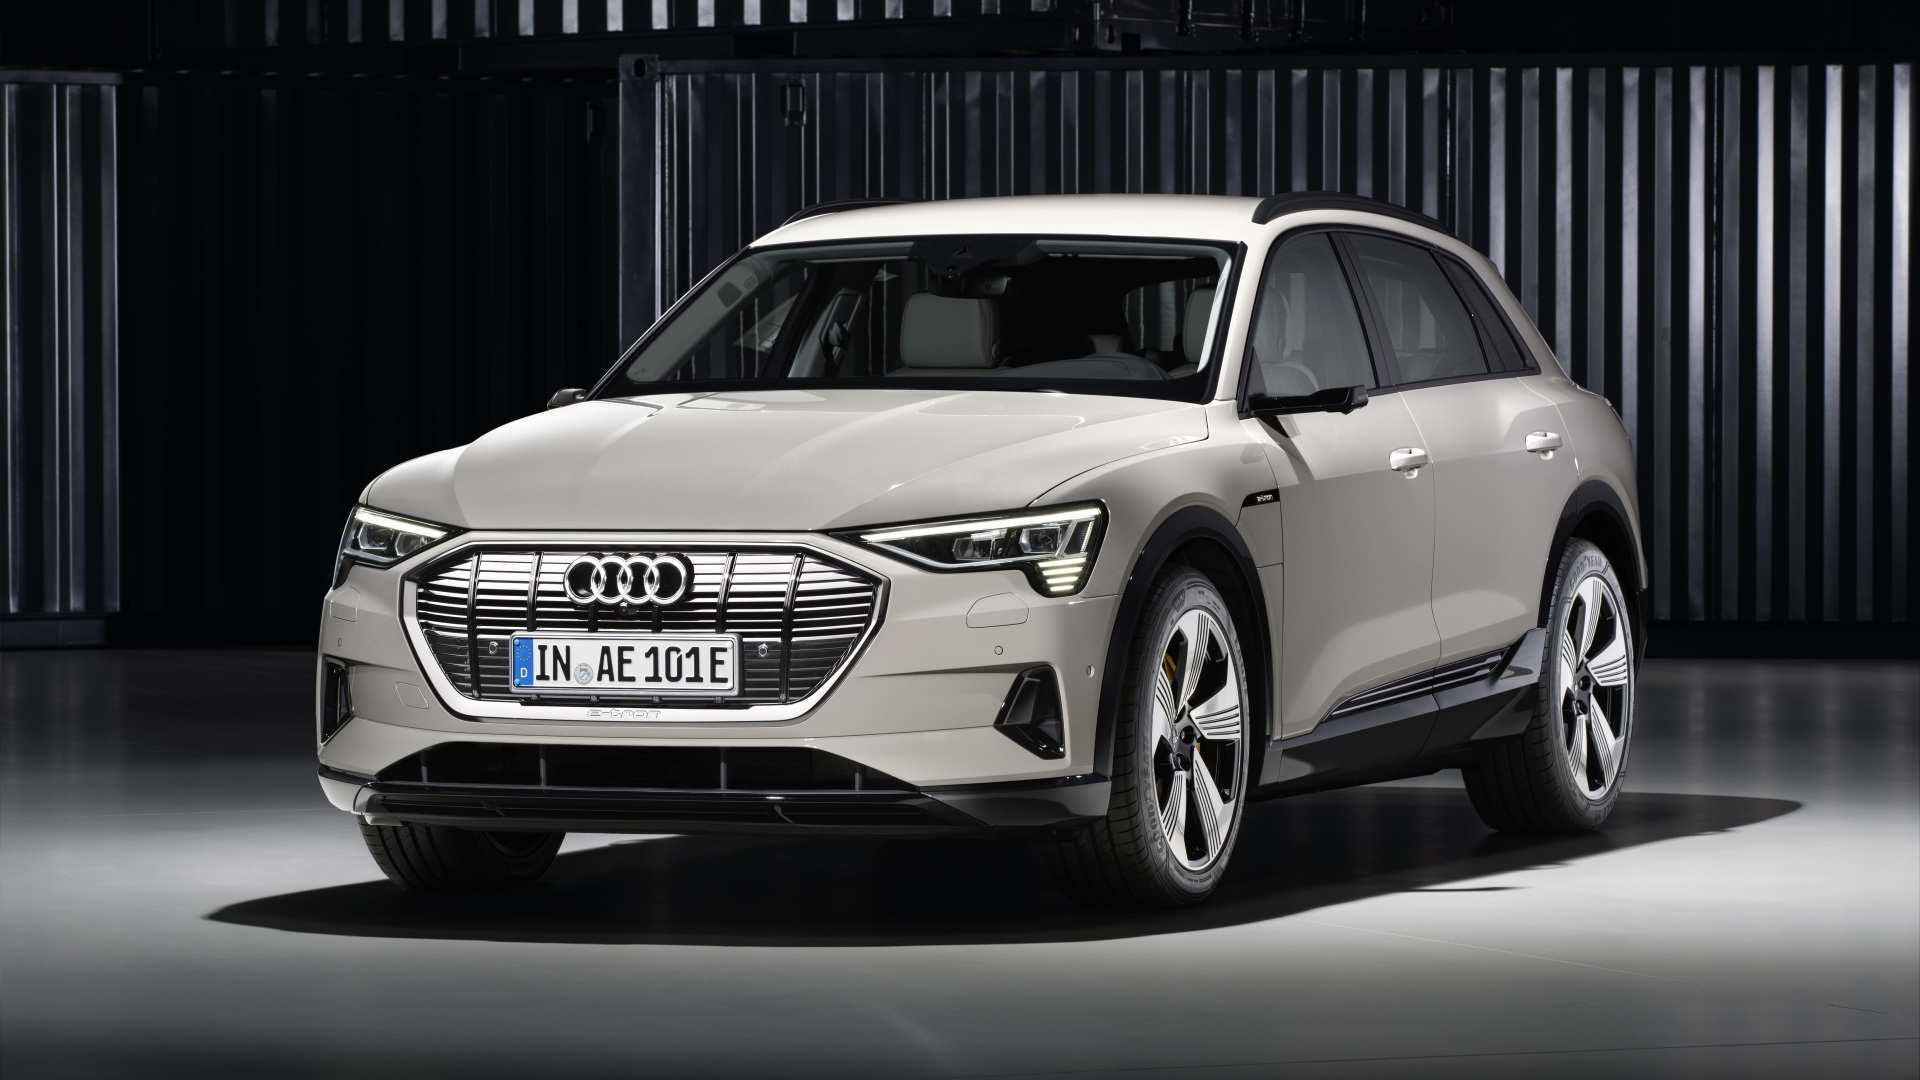 80 Gallery of 2019 Audi E Tron Quattro Specs and Review by 2019 Audi E Tron Quattro